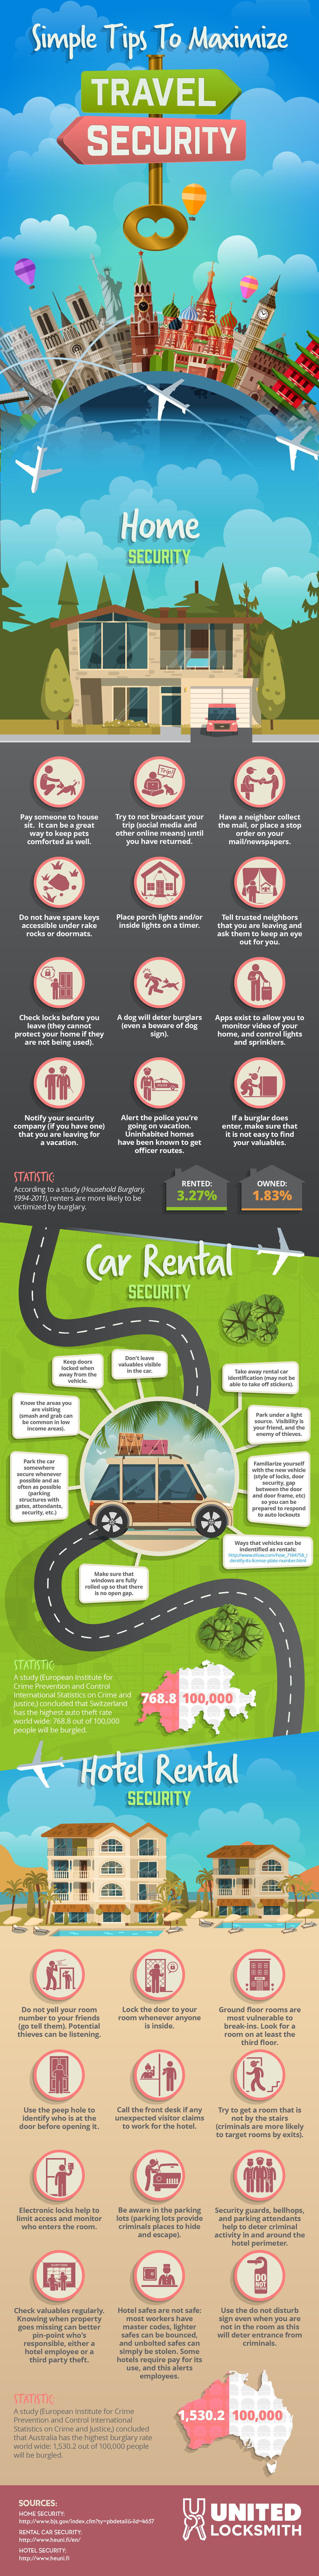 Travel Security Infographic